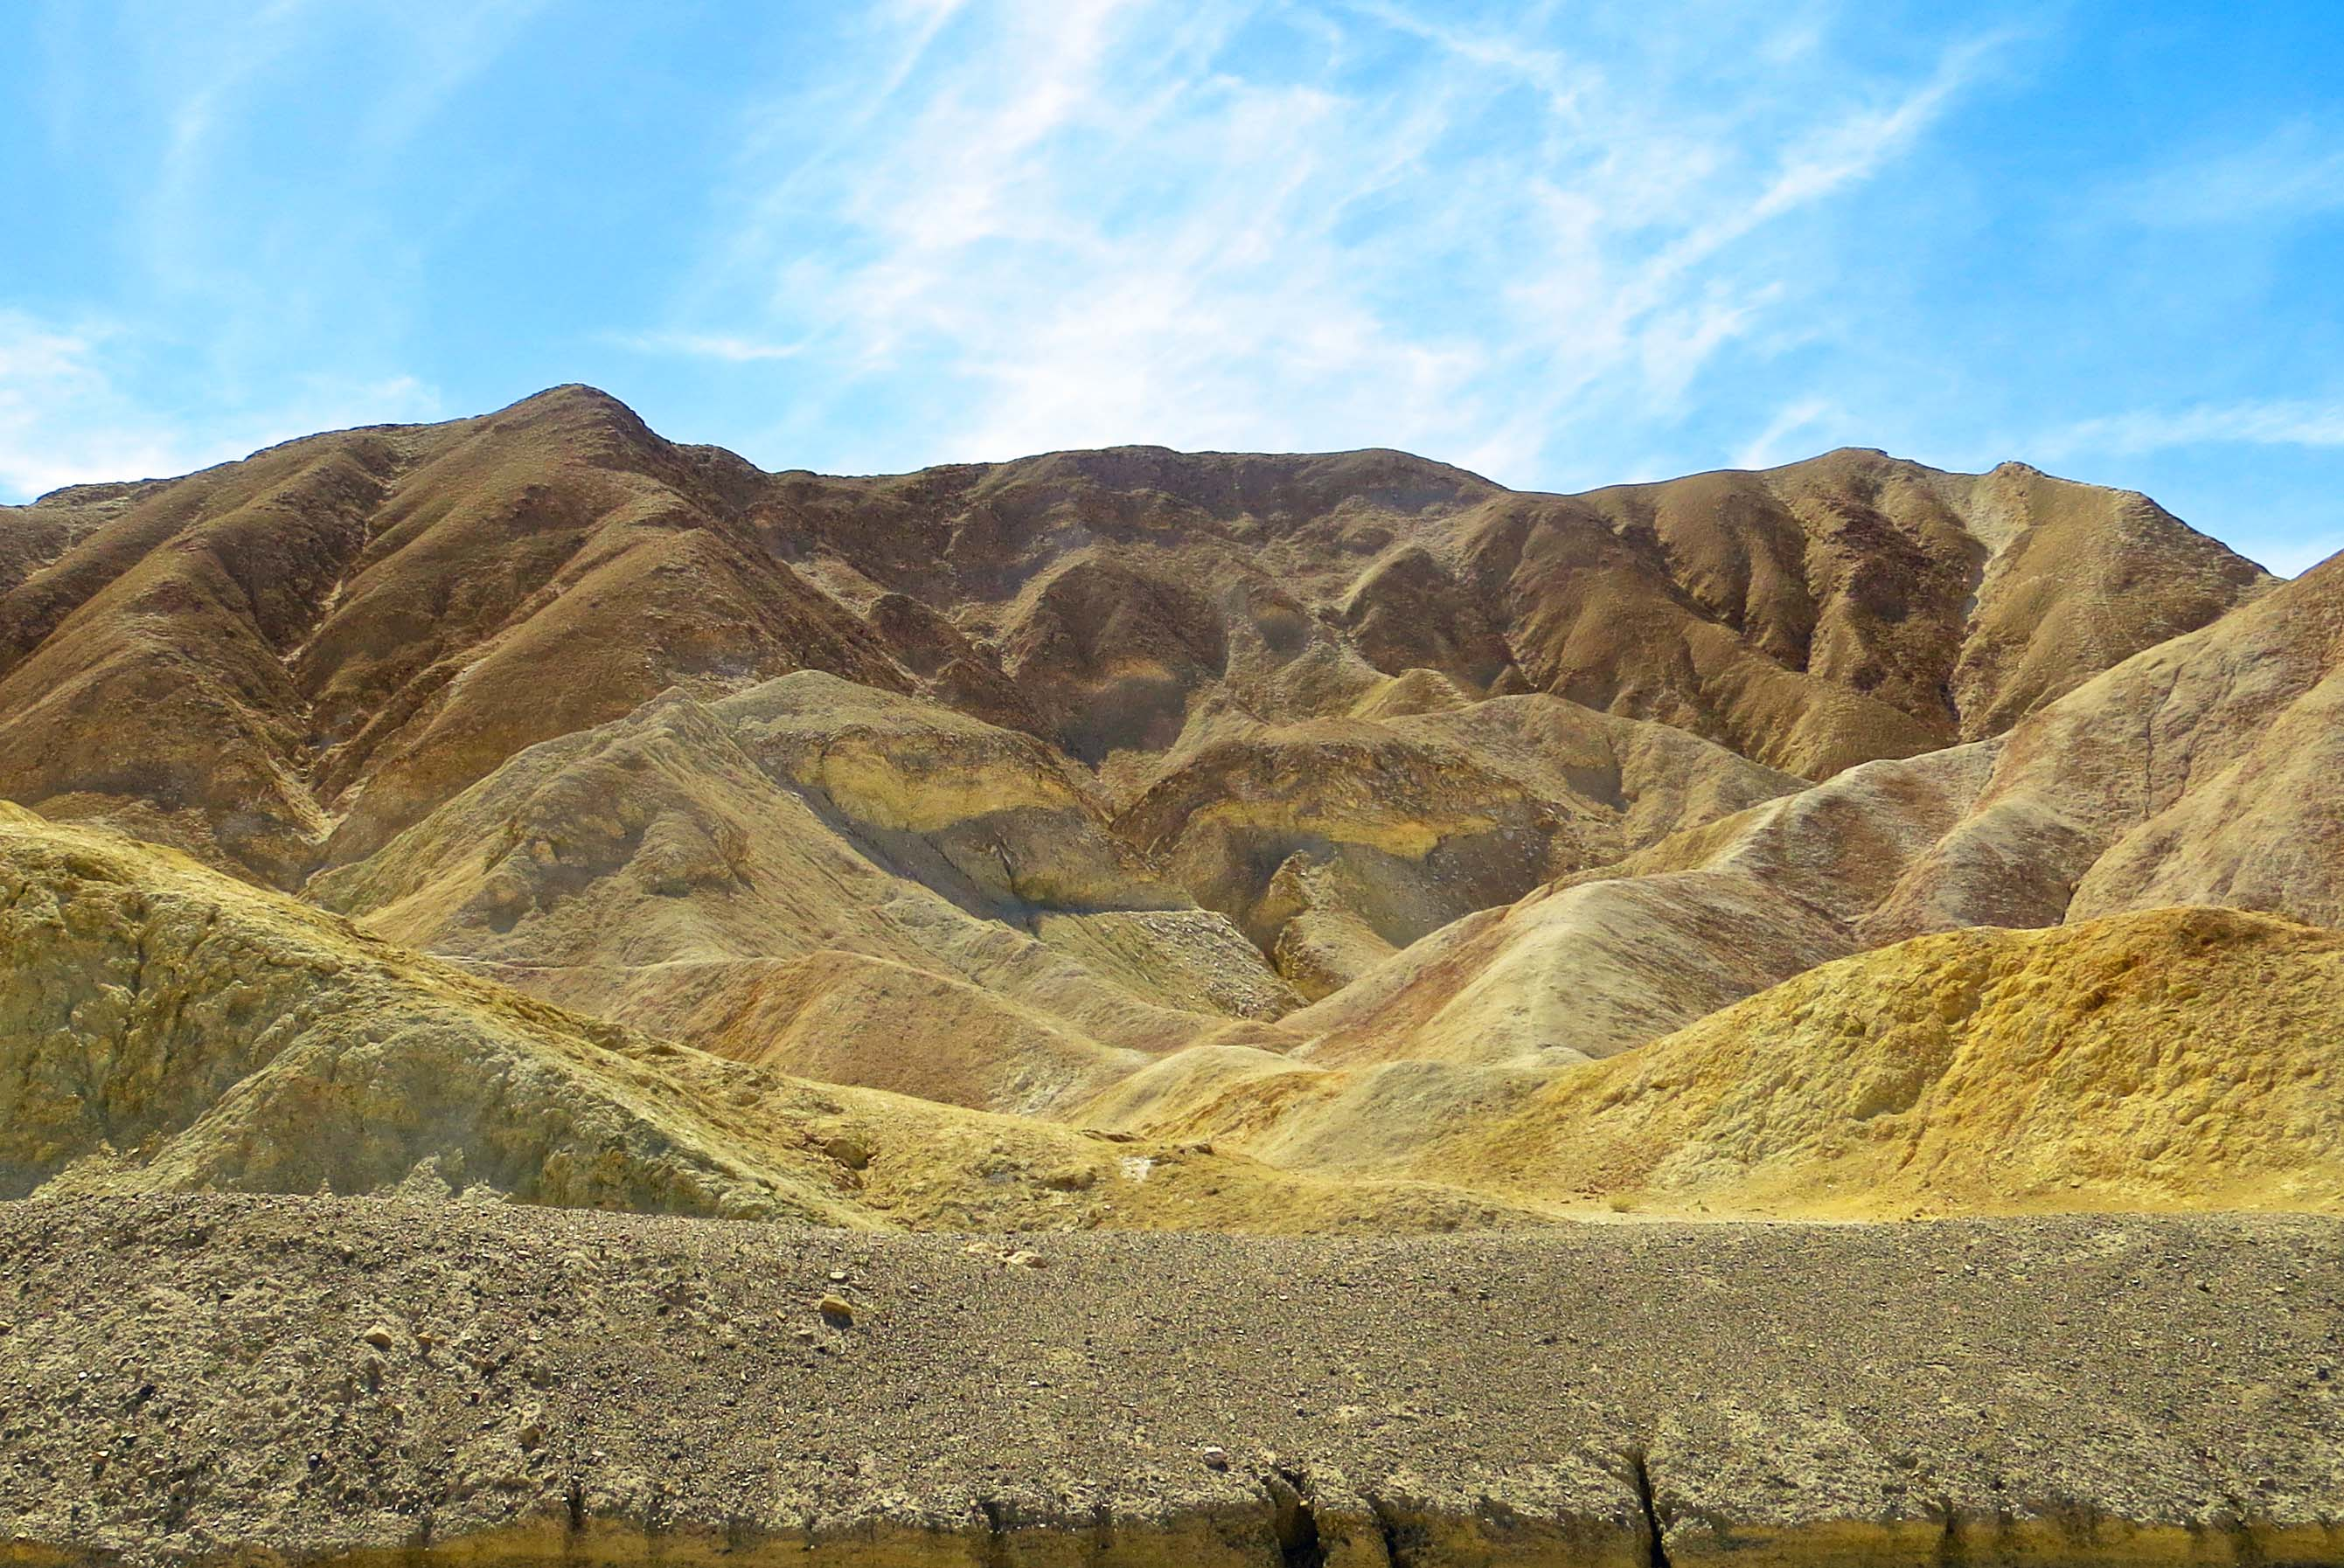 Photo of blue skies with puffy clouds provides backdrop for Twenty Mule Team Canyon in Death Valley.